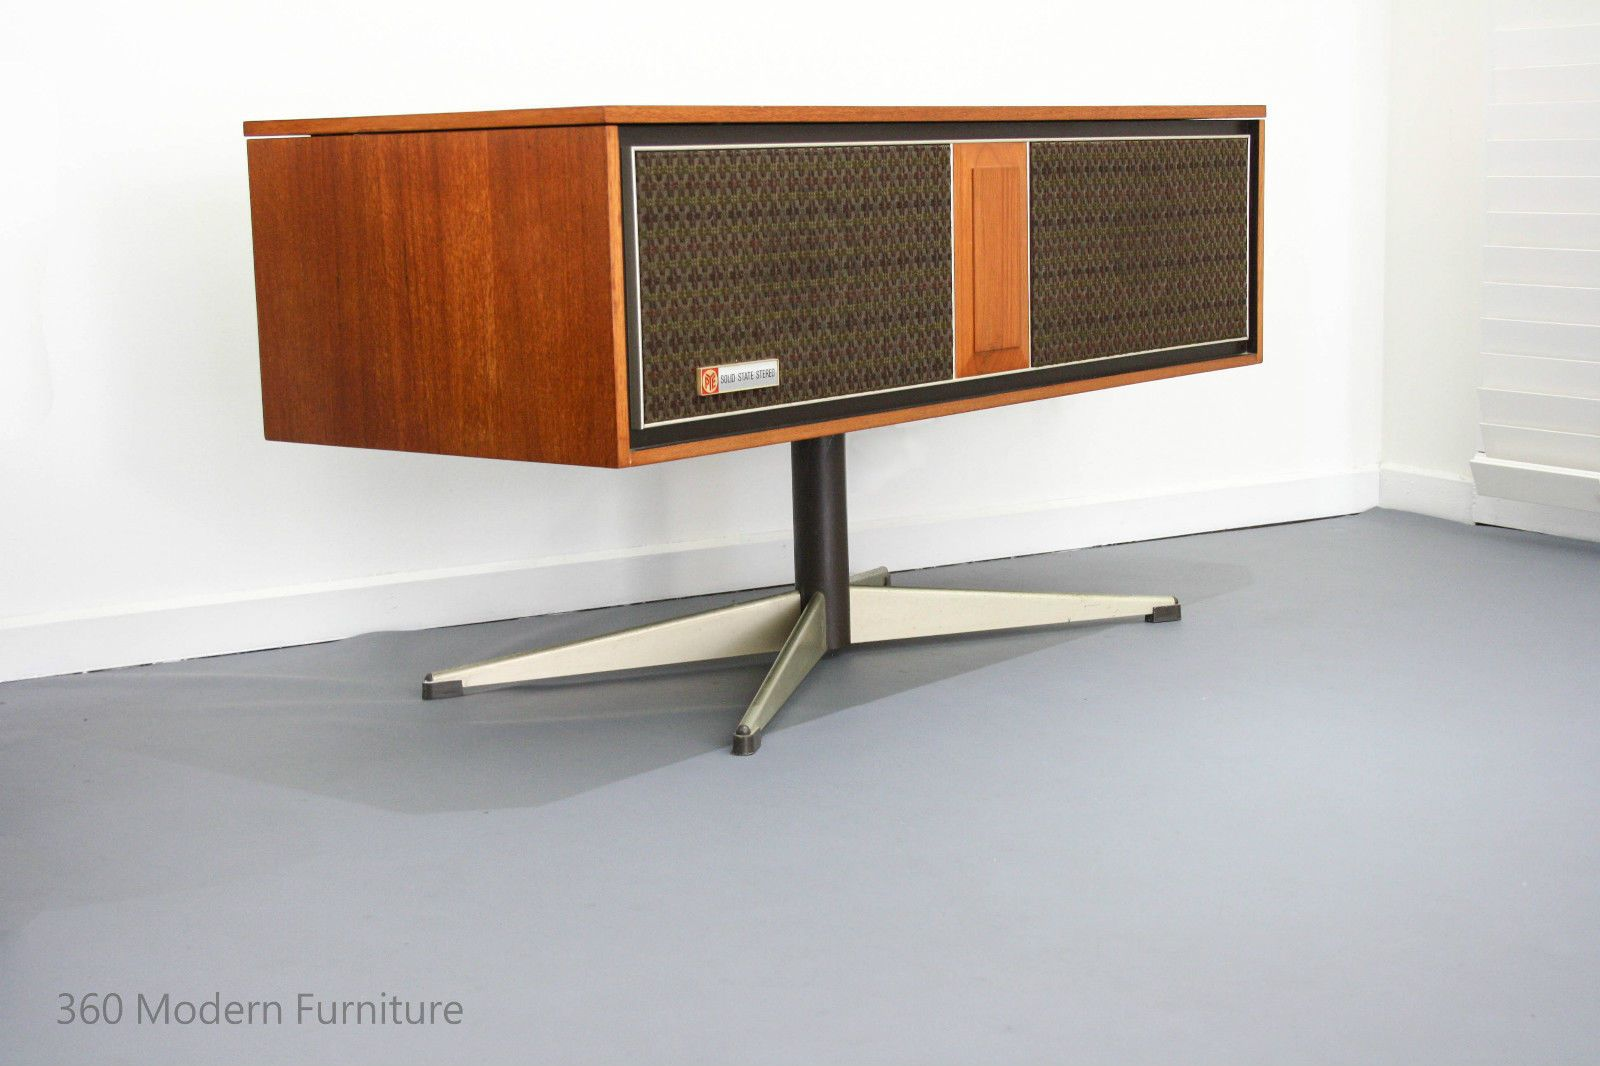 turntable furniture modern mid century sideboard teak radiogram record player turntable vintage retro radio httpswww pin by methuselahpalooza on classic radios and consoles in 2018